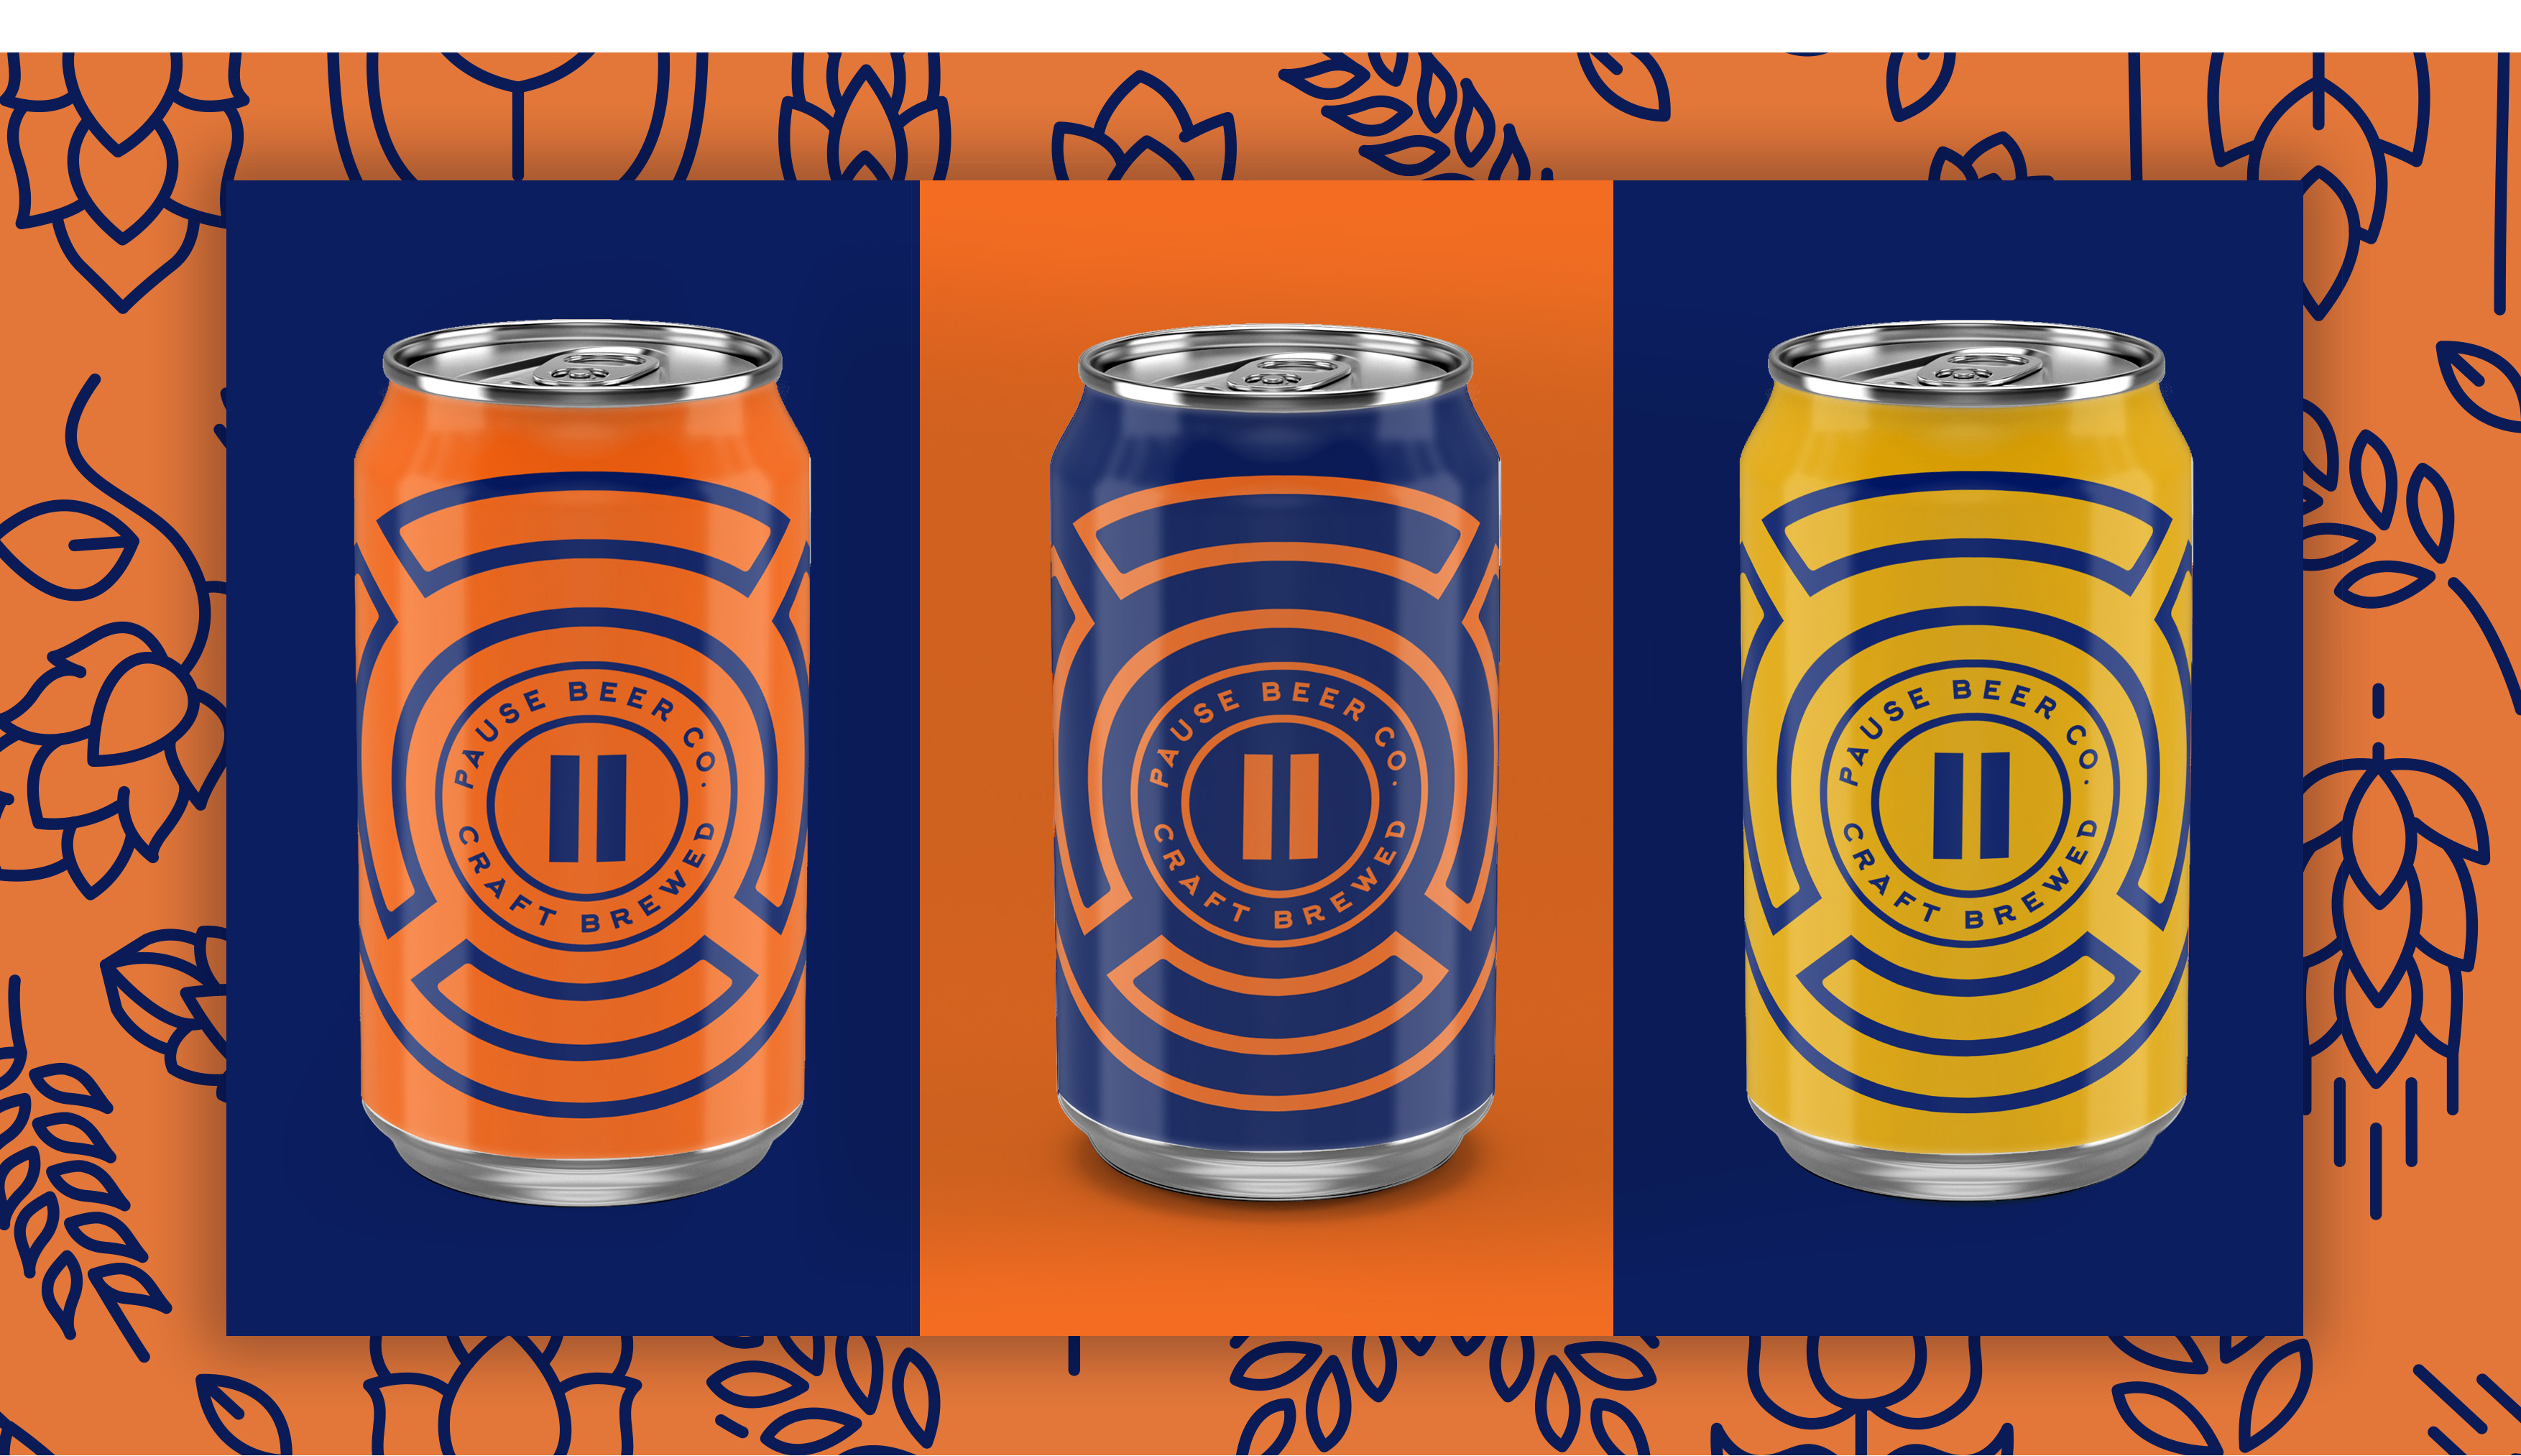 pause-beer-co-case-study-corporate-identity-design-packaging.jpg